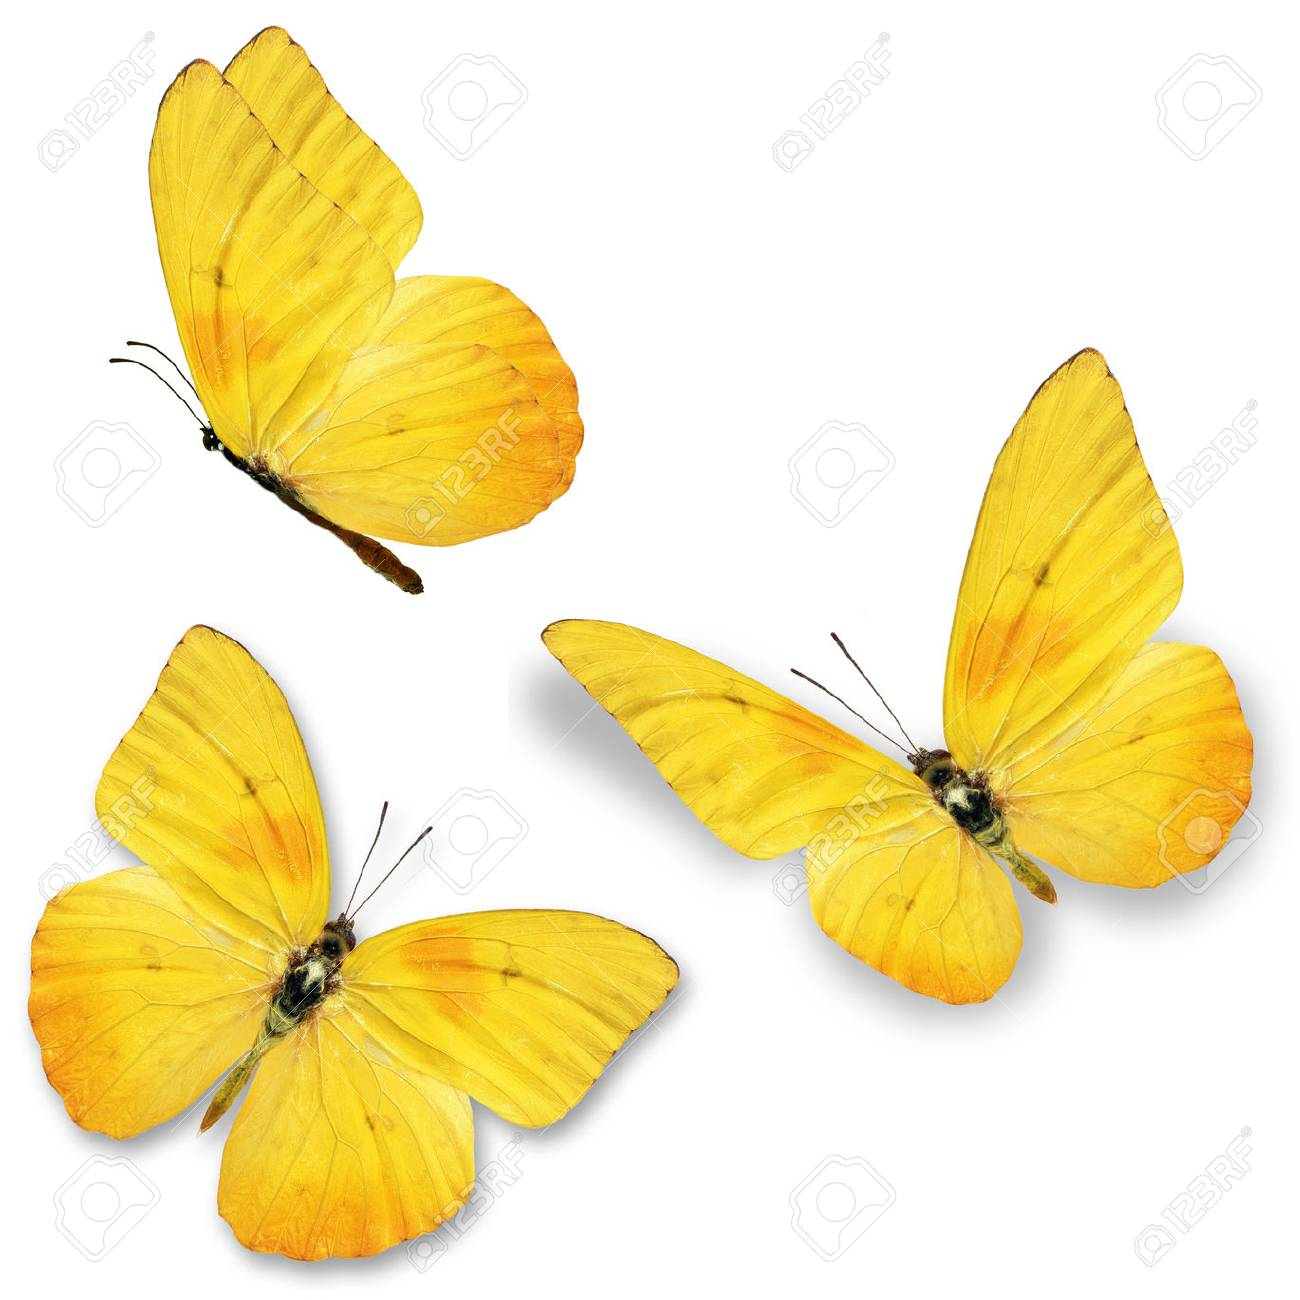 Three yellow butterfly, isolated on white background - 40372304